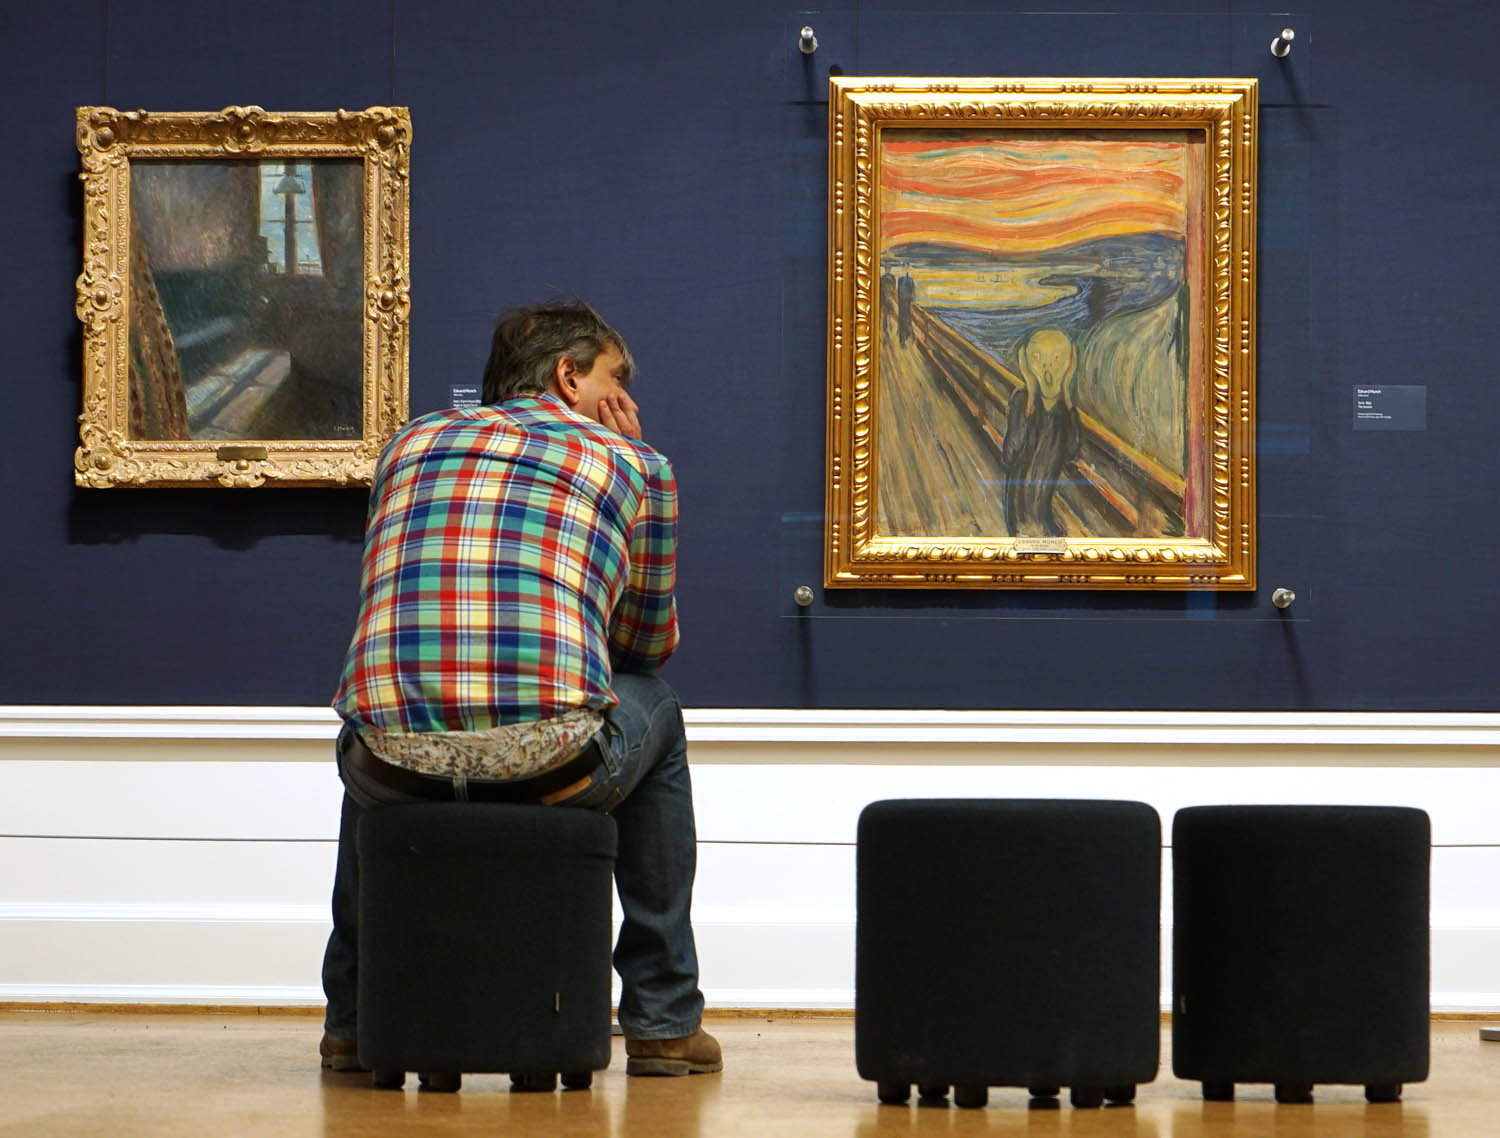 Munch Gallery Oslo in The Munch Gallery at